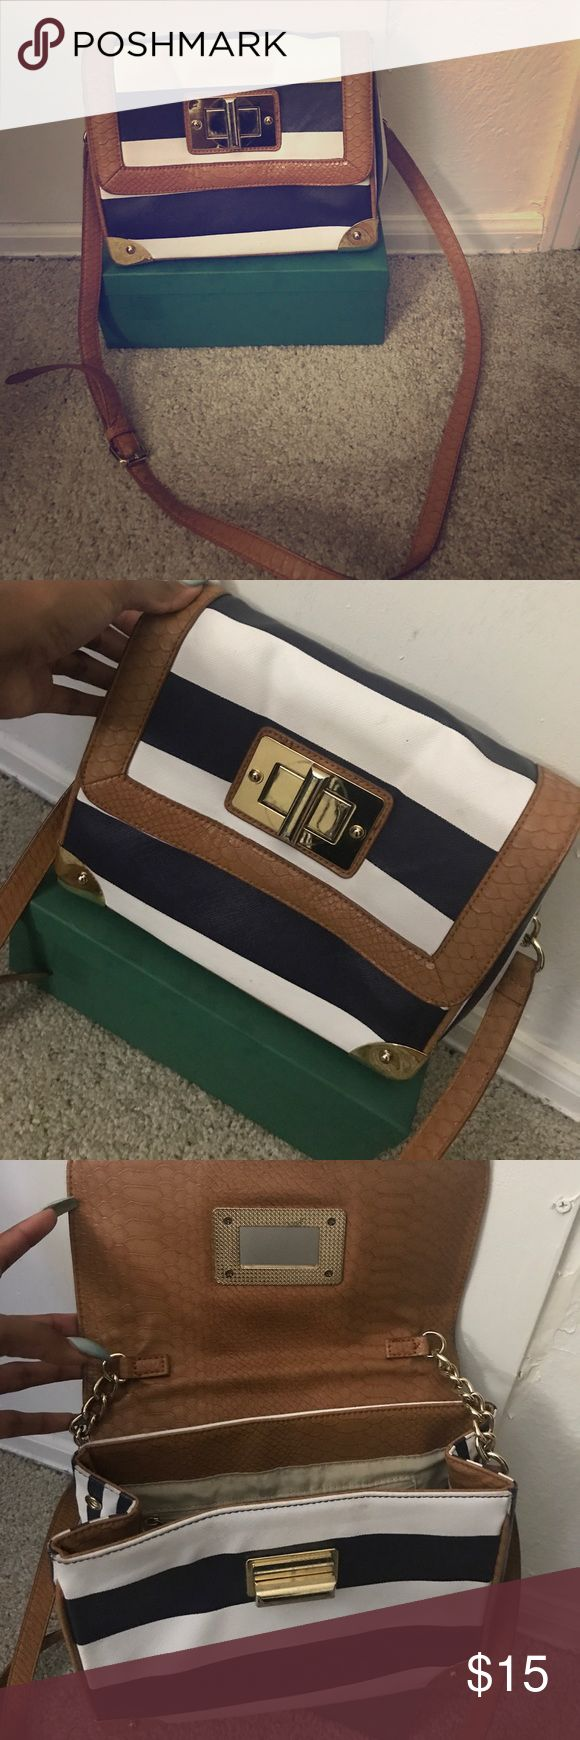 Navy and white striped Aldo purse Cleaning out my closet and just wanted to get rid of stuff that I've had for a while. Navy and white striped Aldo purse trimmed in gold and light brown in good condition! Aldo Bags Satchels